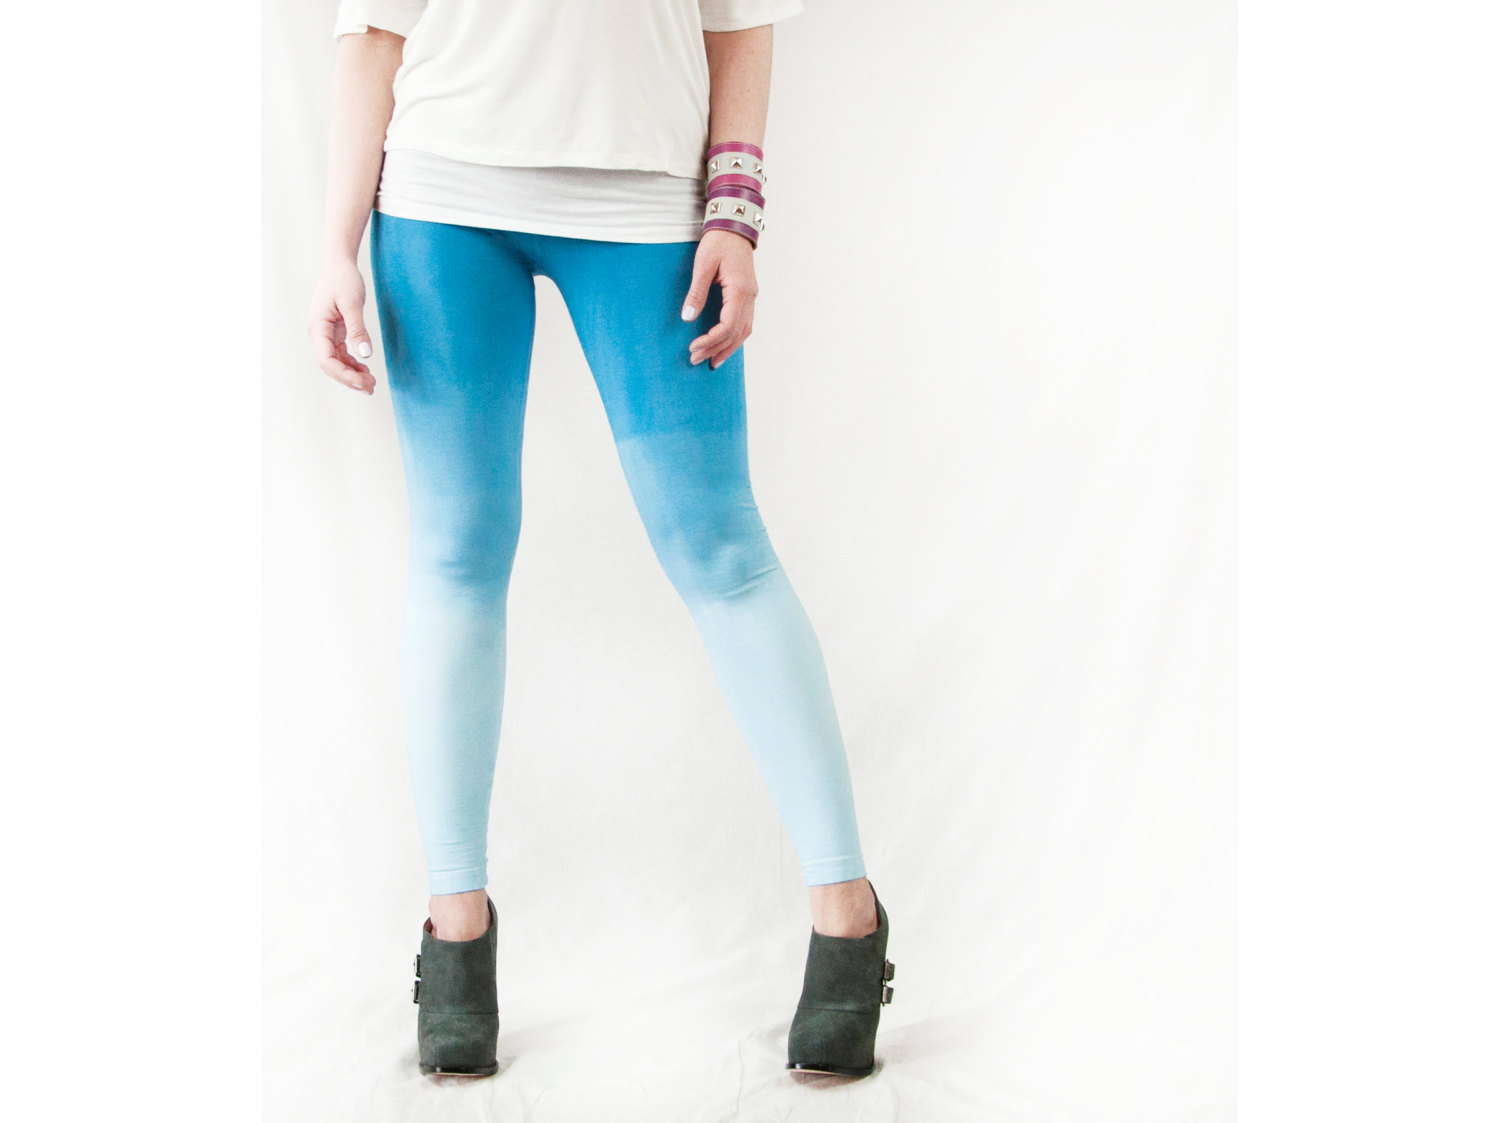 Yoga Leggings Blue Cotton Ombre Tights Womens LARGE Crossfit Workout Pants Hand Dyed Dip Dye Clothing